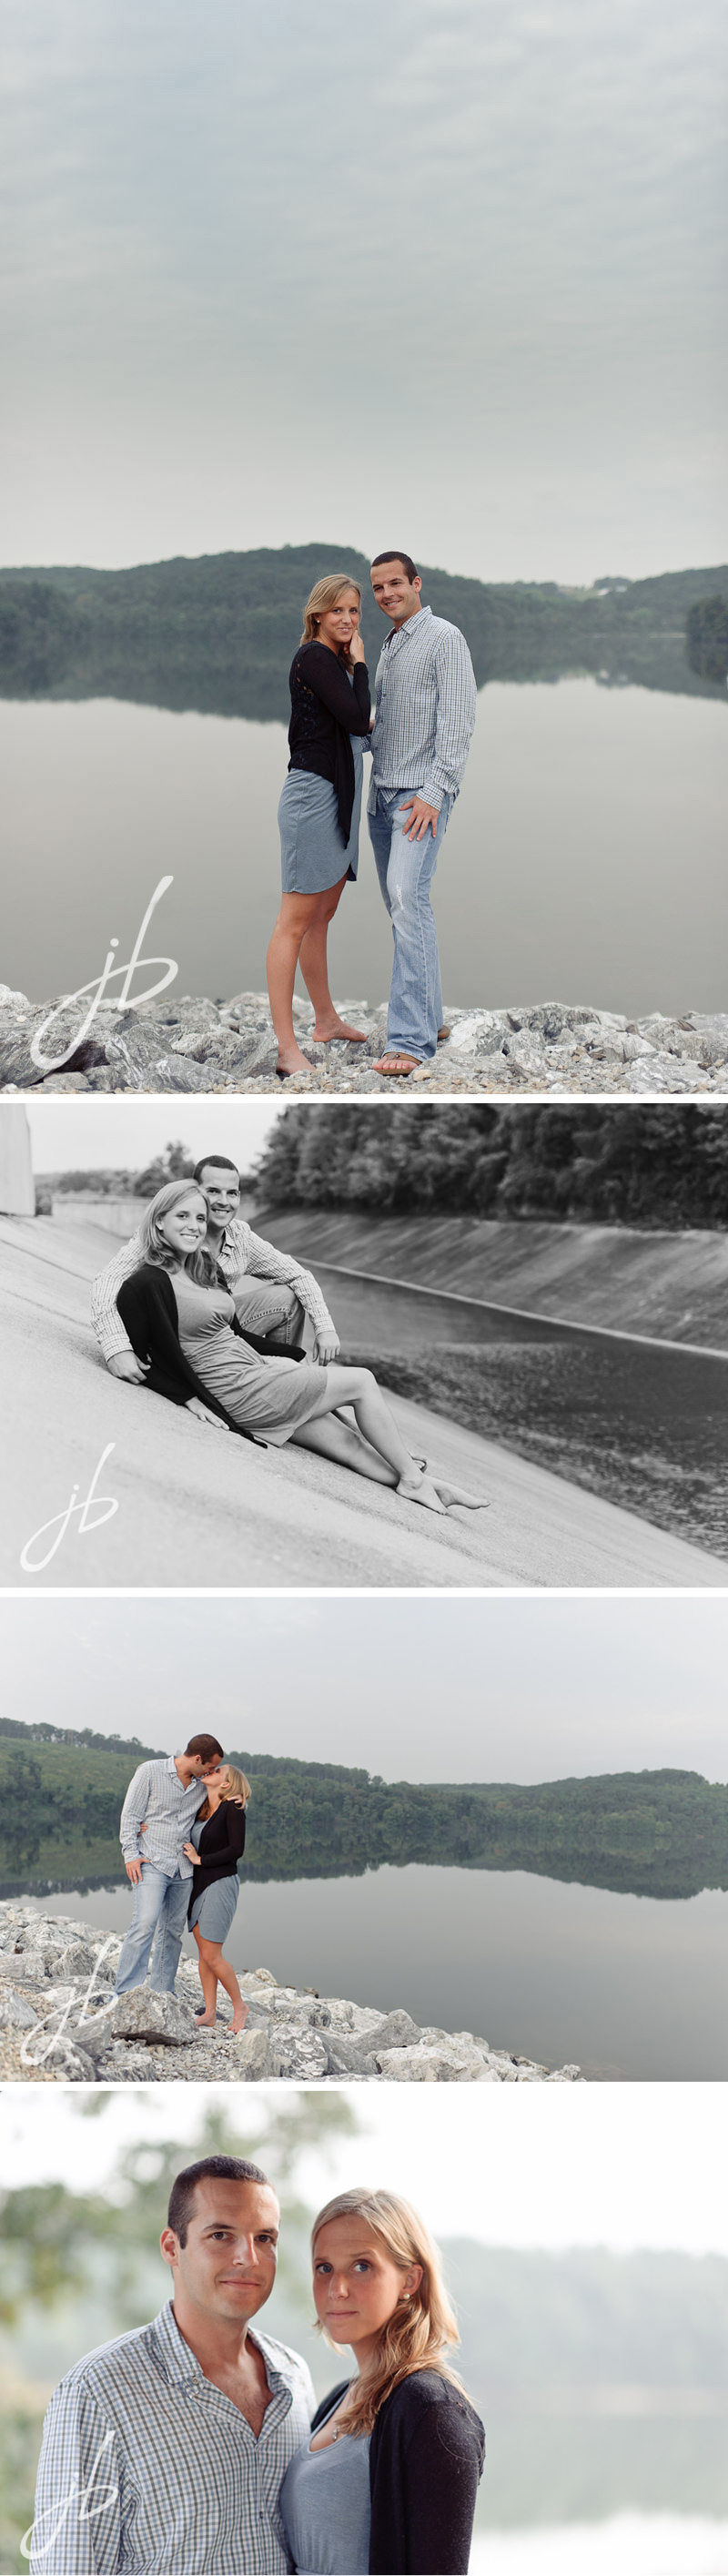 York PA wedding photography by Jeremy Bischoff Photography 004